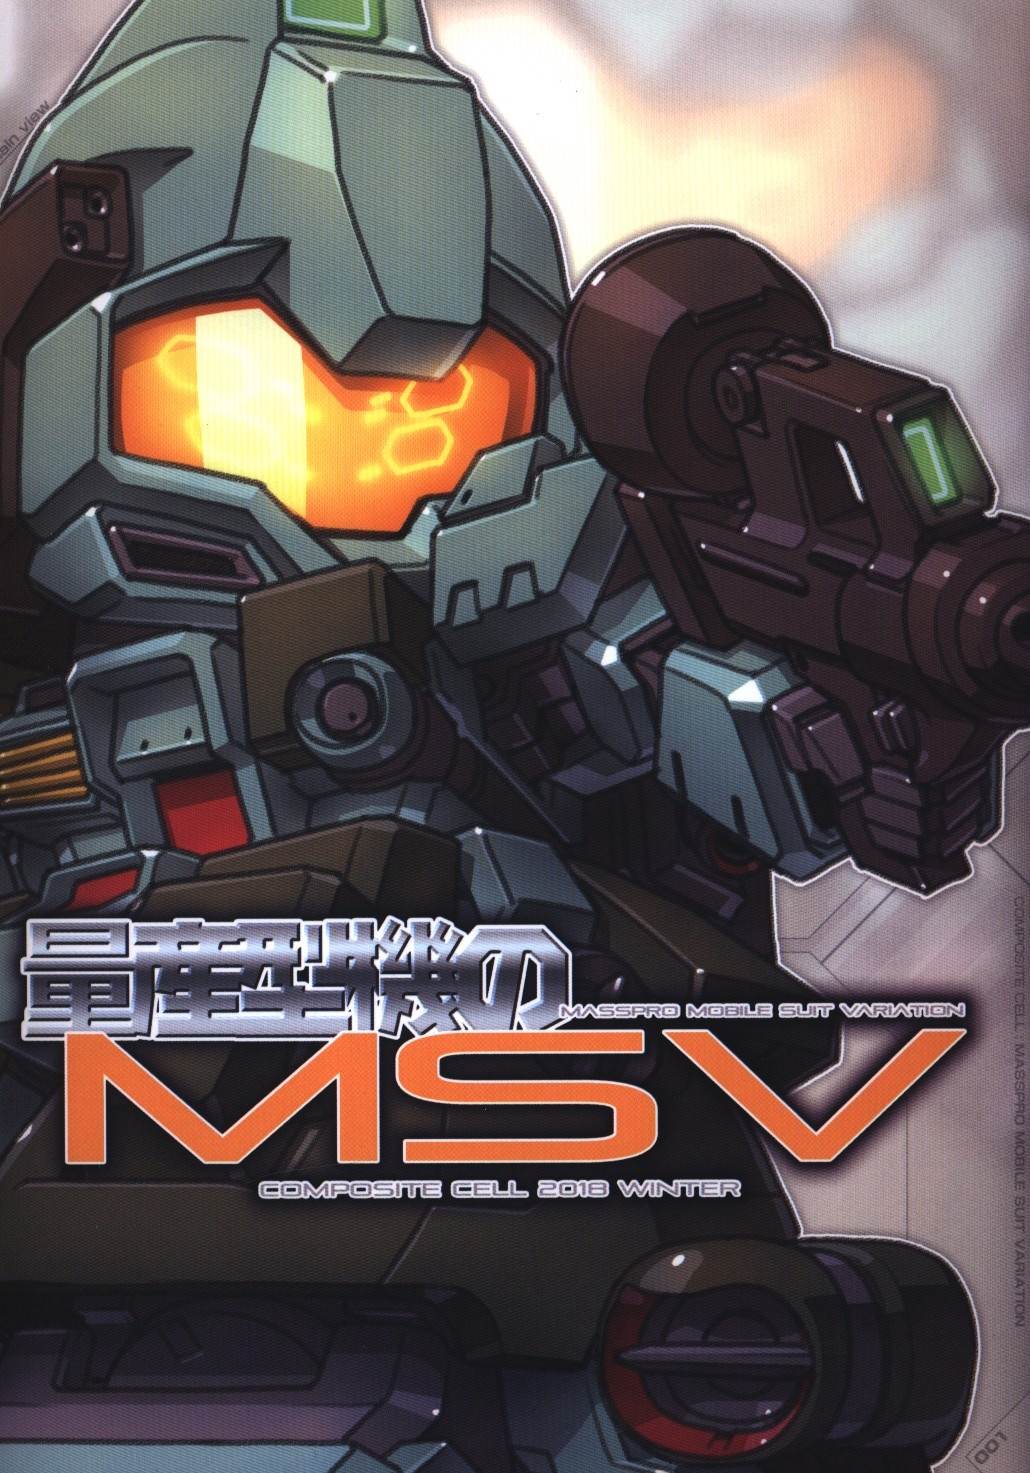 Doujinshi - Gundam series (量産機のMSV) / COMPOSITE CELL